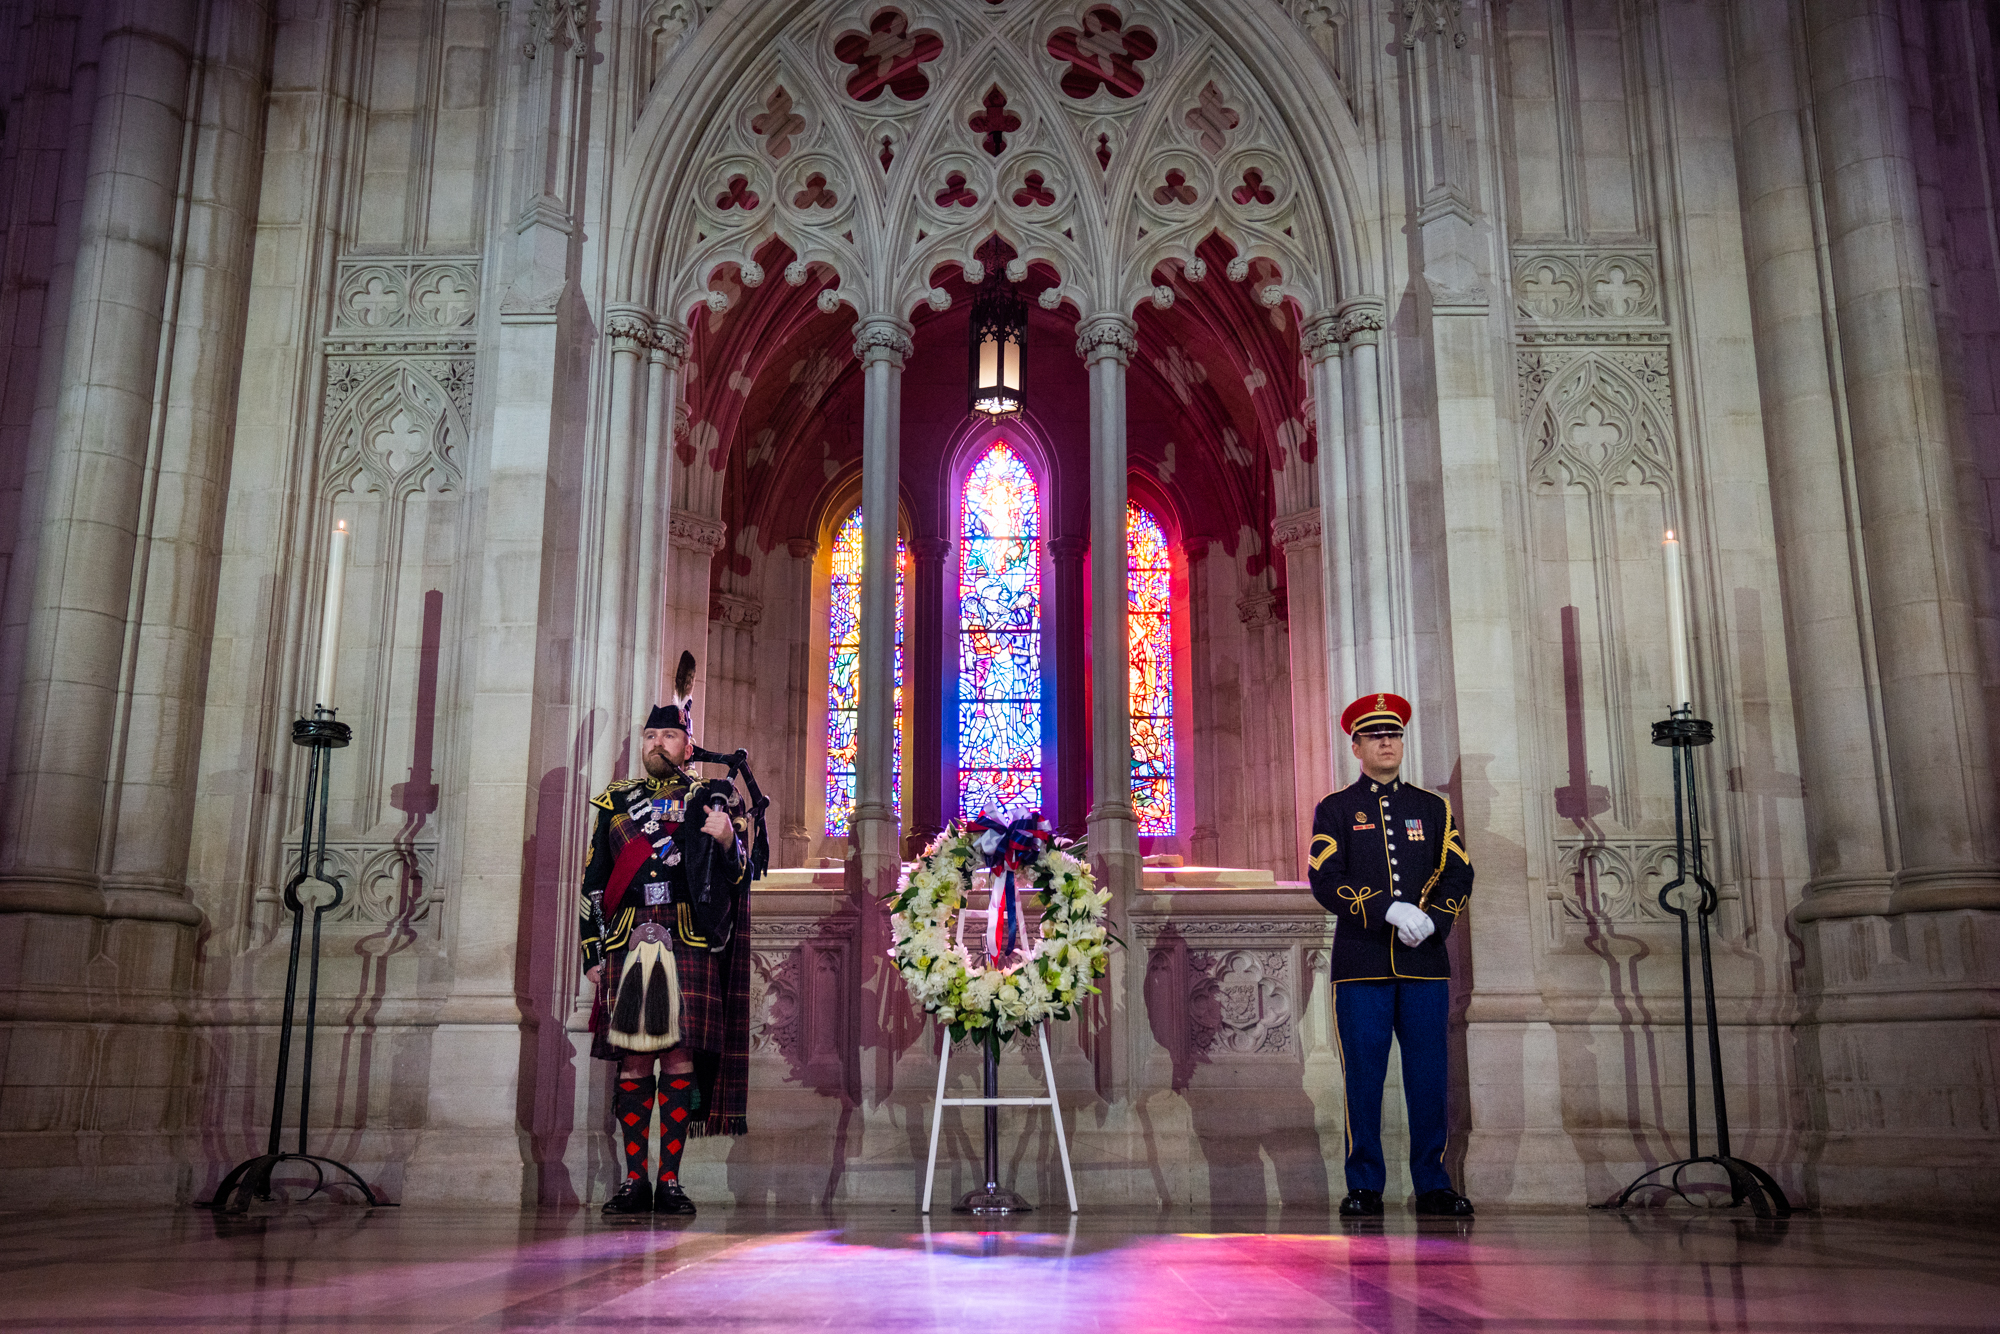 Peter MacGregor (left), Warrant Officer Class 2 Pipe Major, and a member of the U.S. Army Band (right) stand at attention alongside the centennial wreath.